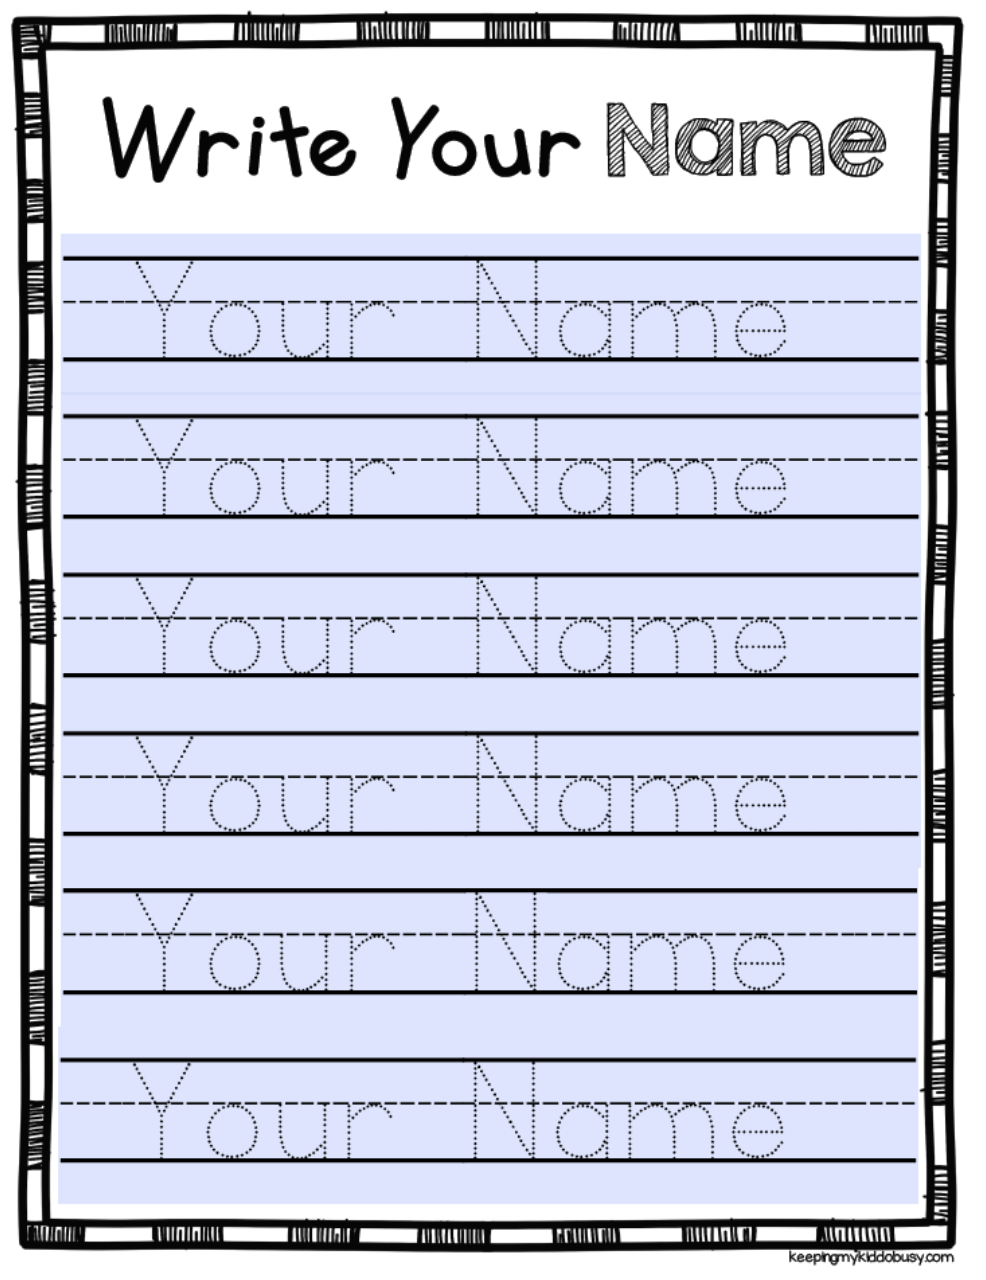 Free Editable Name Tracing Activity - Type Student Names And intended for Name Tracing Freebie